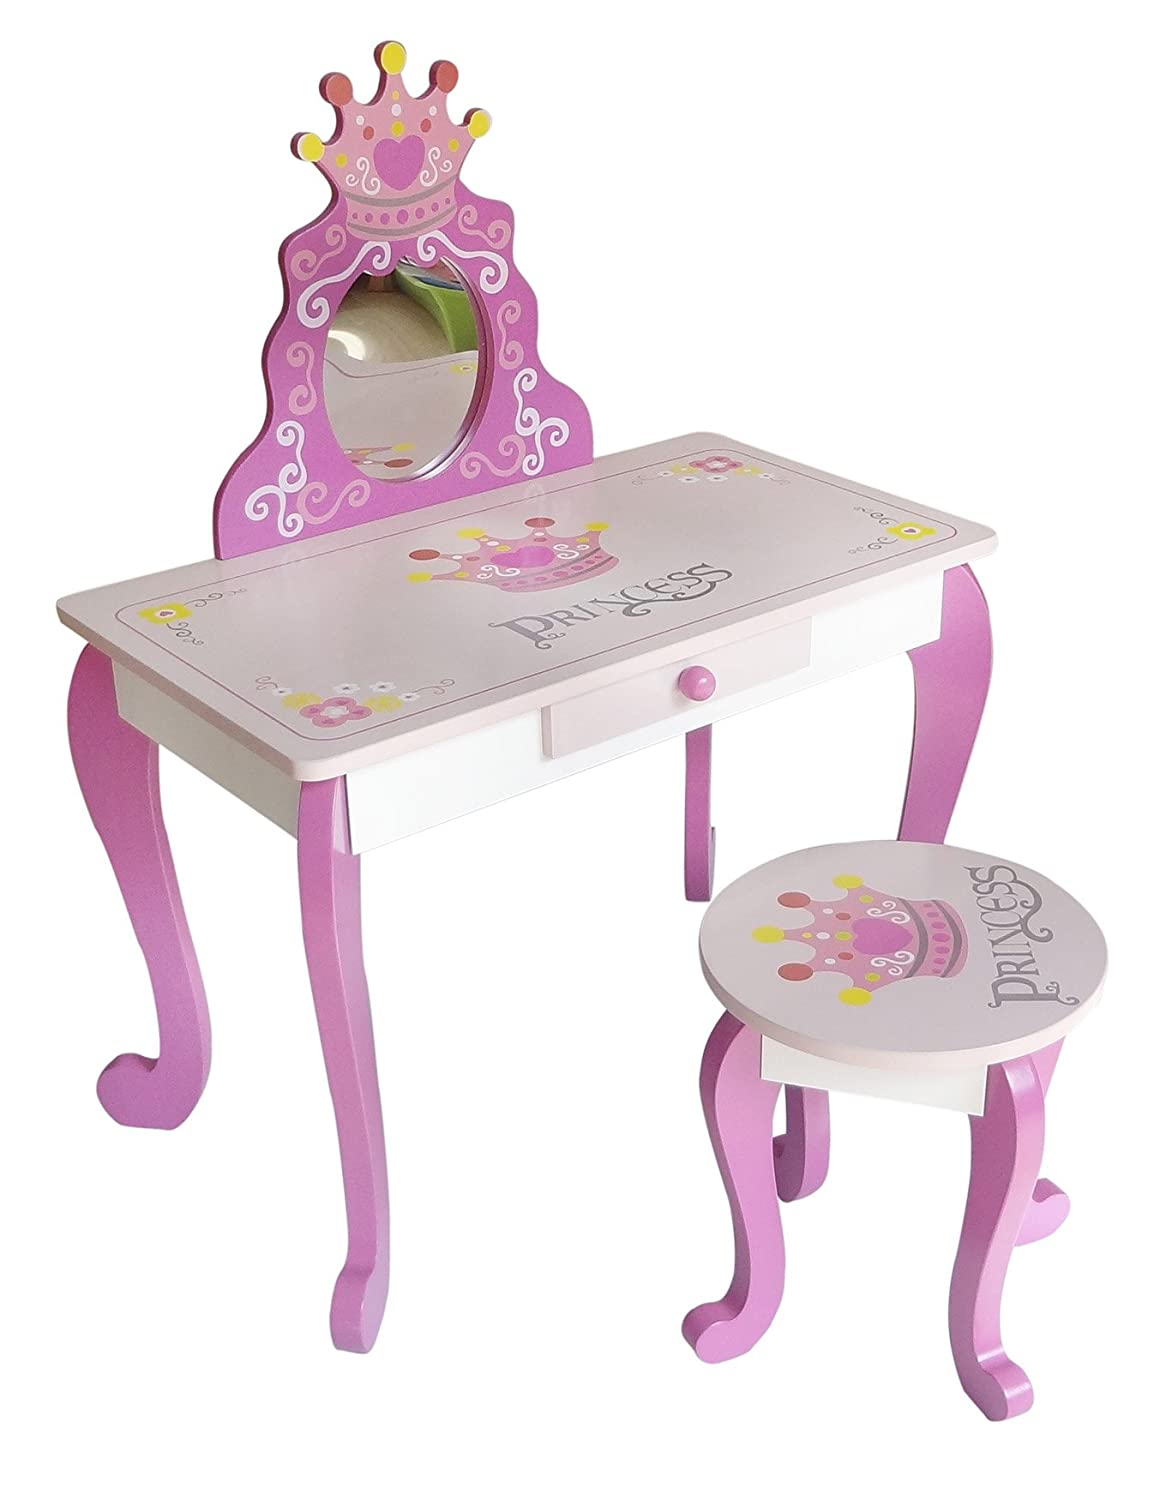 Kiddi Style Wooden Princess Dressing Table & Stool Bebe Style PRNC-1DRST